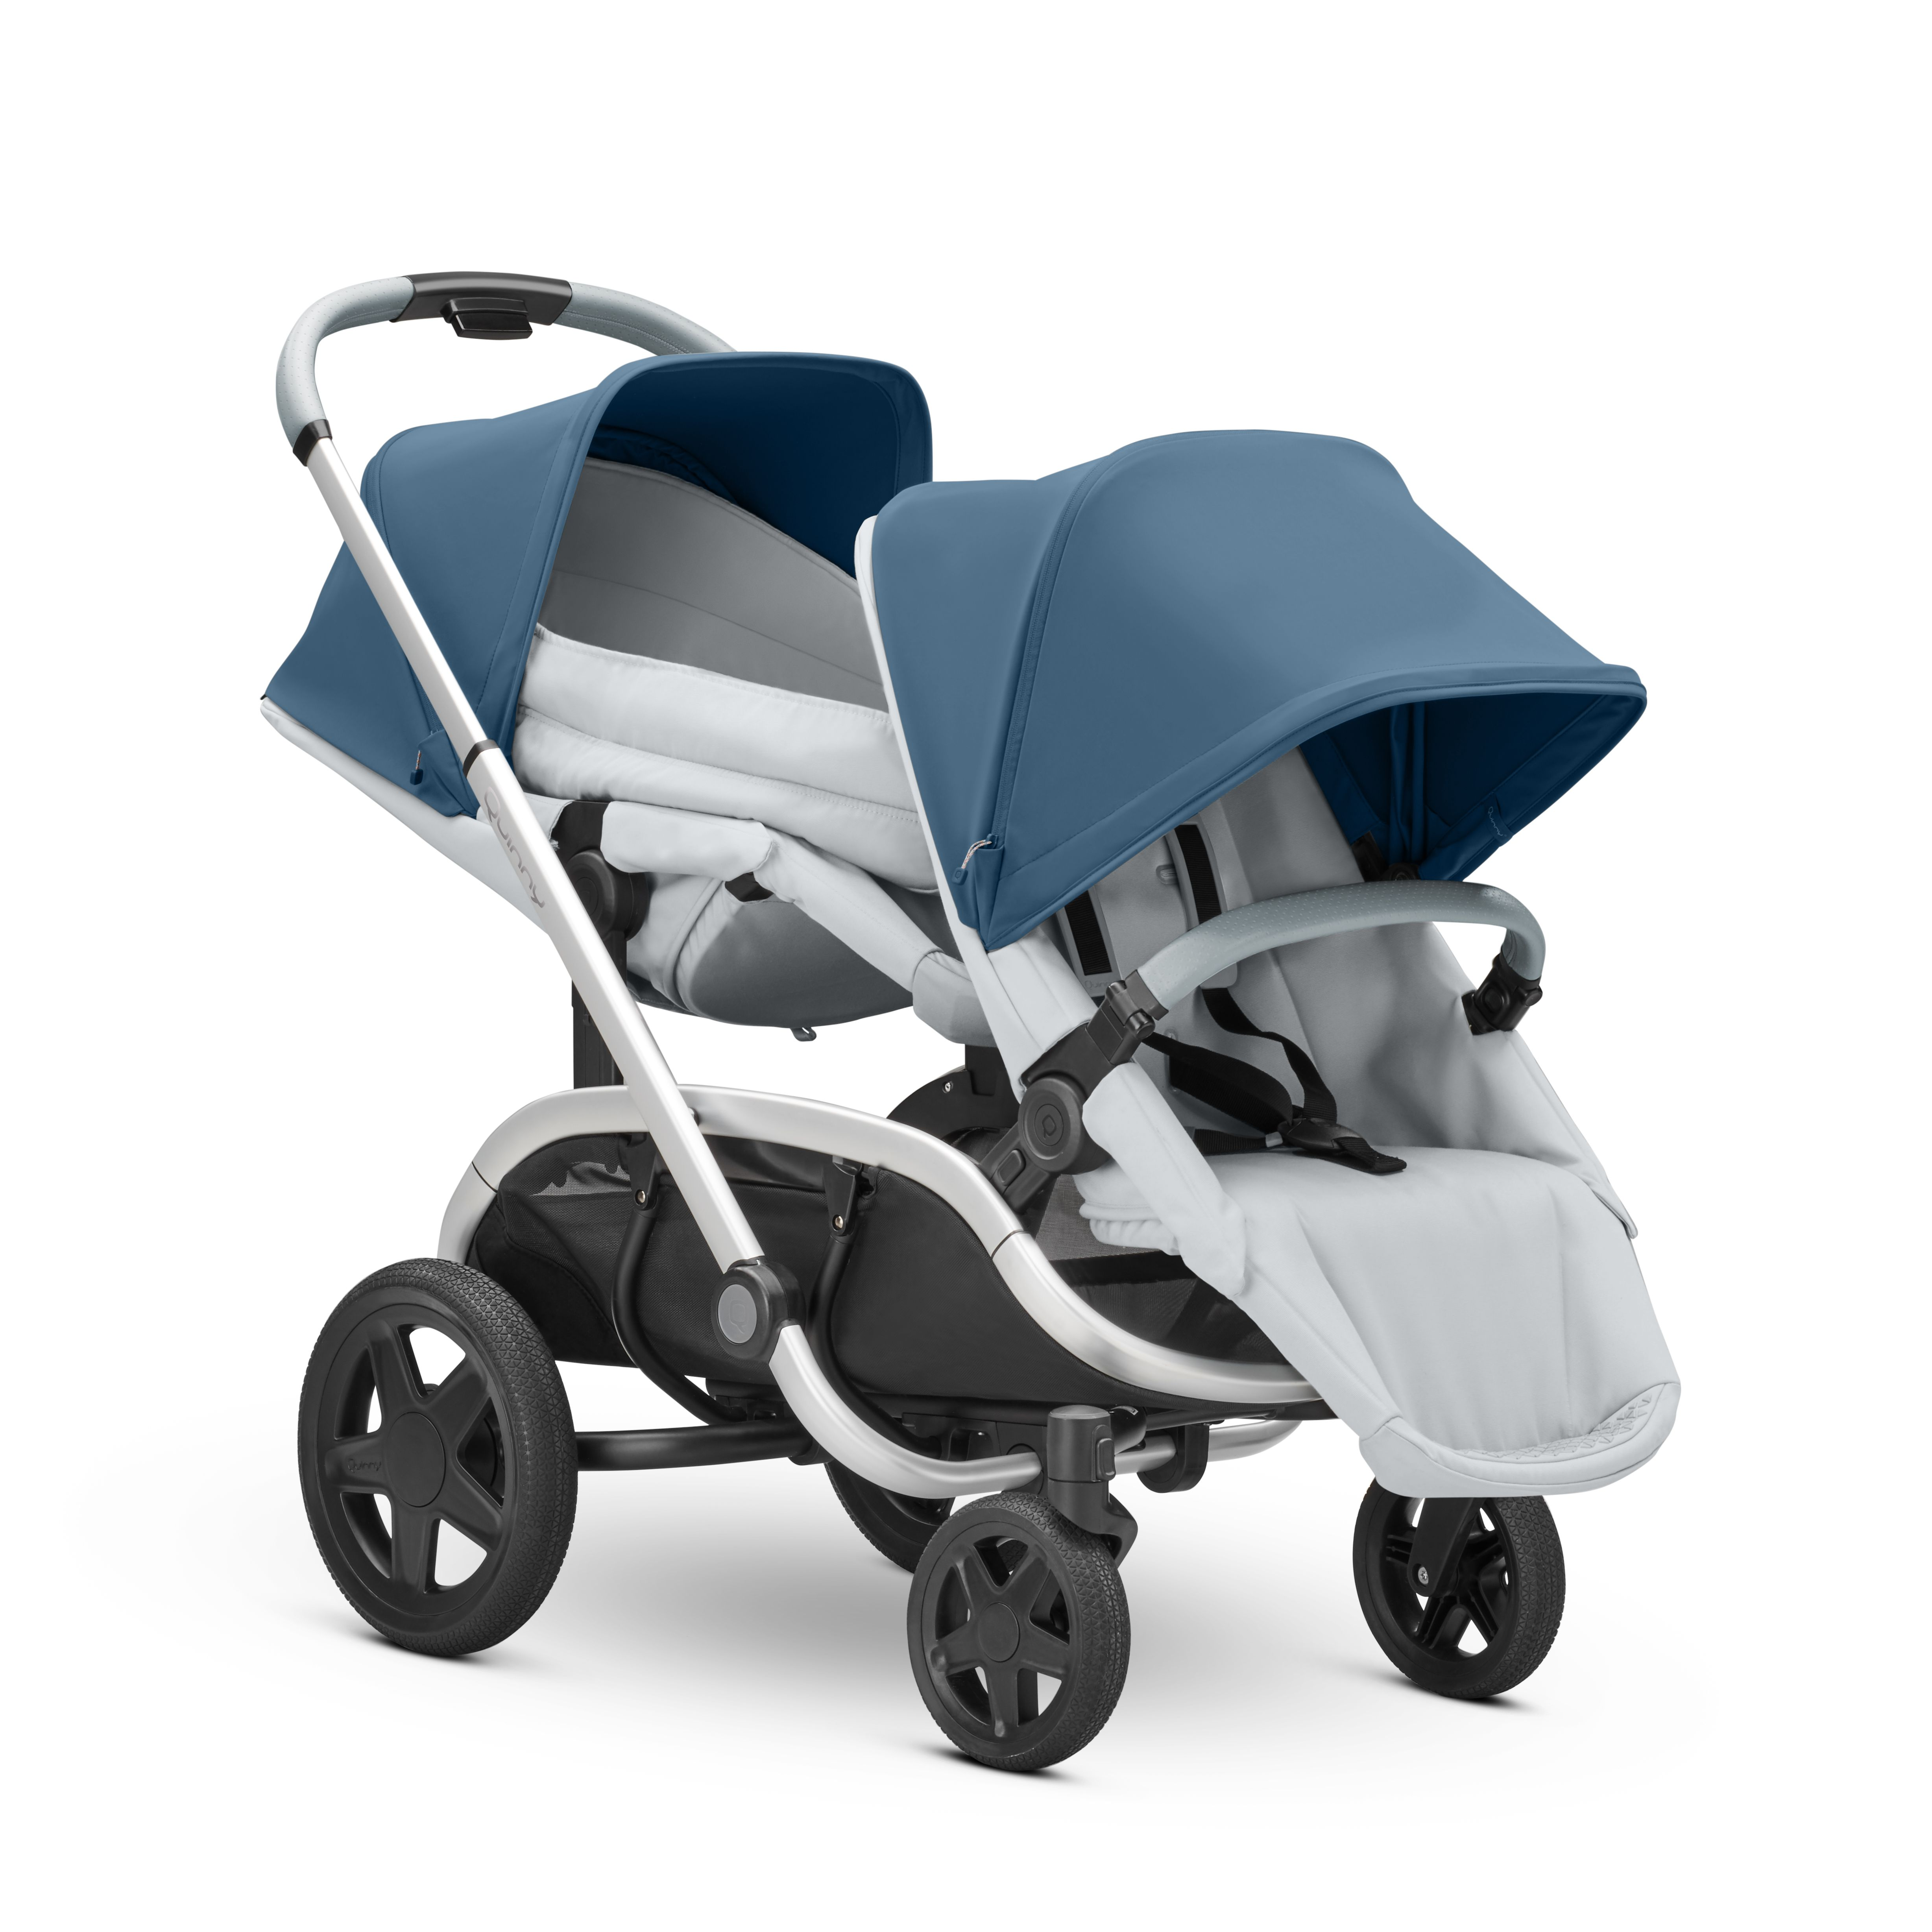 Stroll in style with our Blue Coral on Grey. Our Quinny